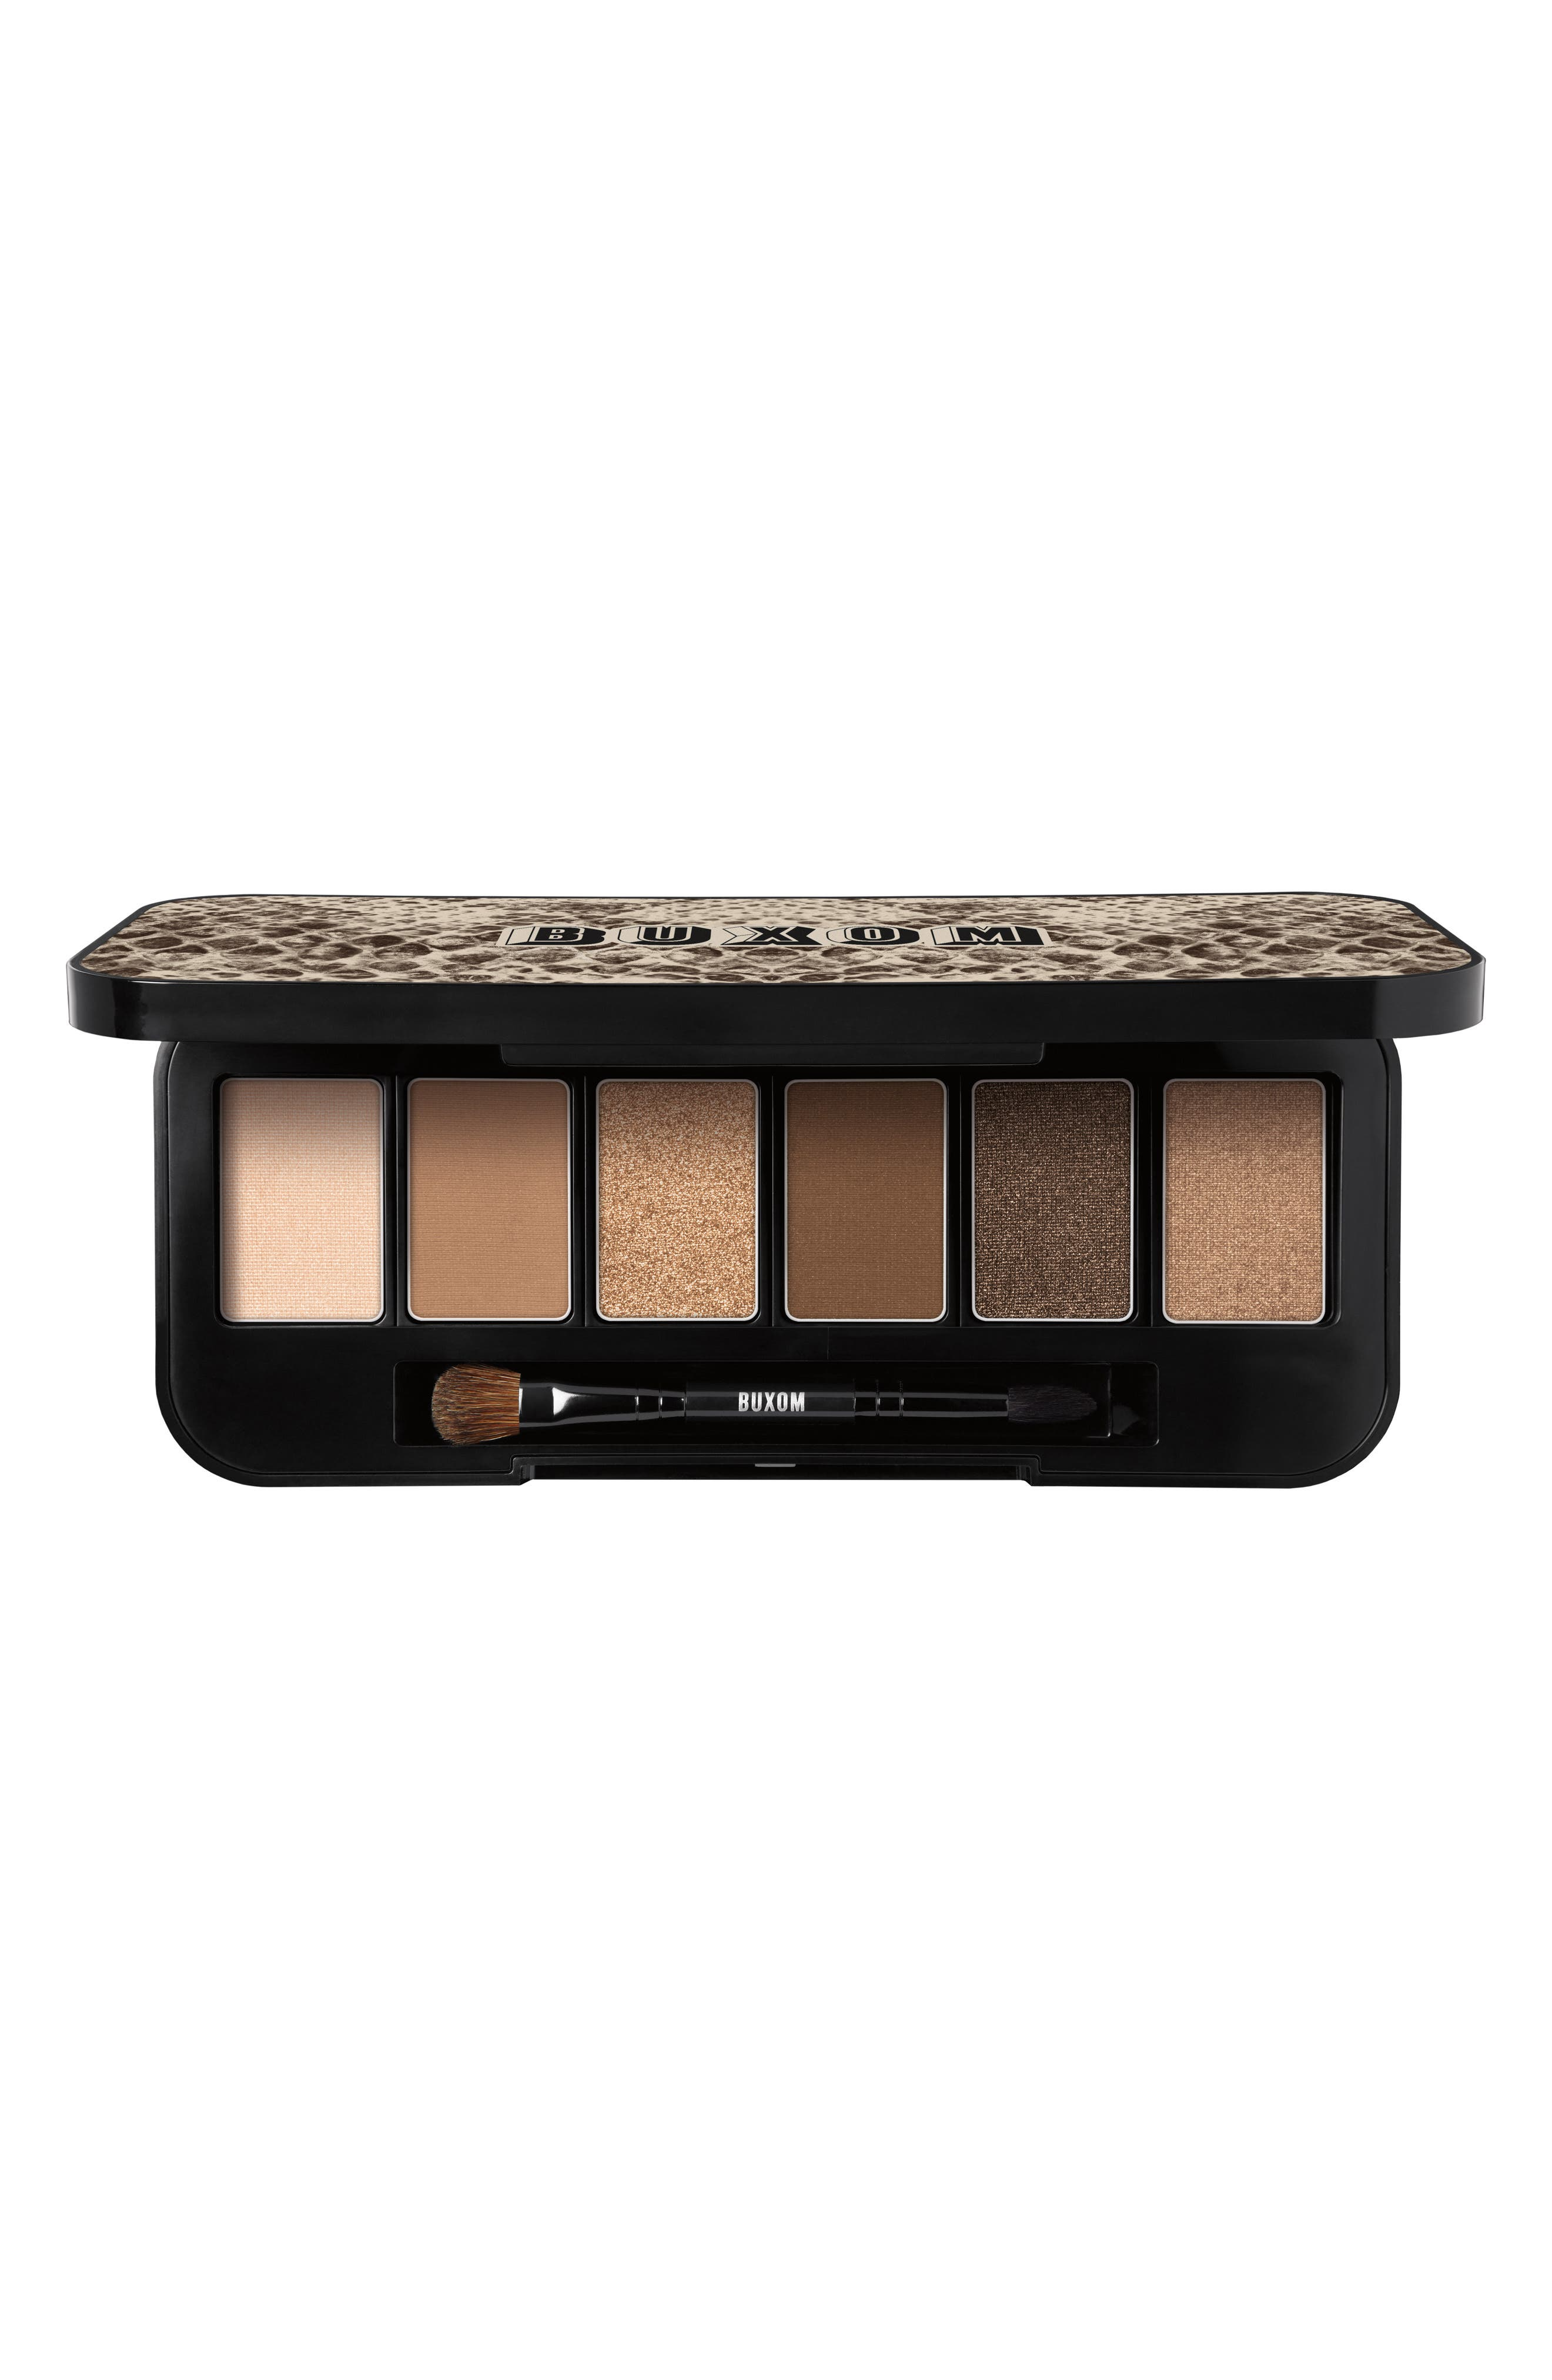 Alternate Image 1 Selected - Buxom May Contain Nudity Eyeshadow Palette ($85 Value)